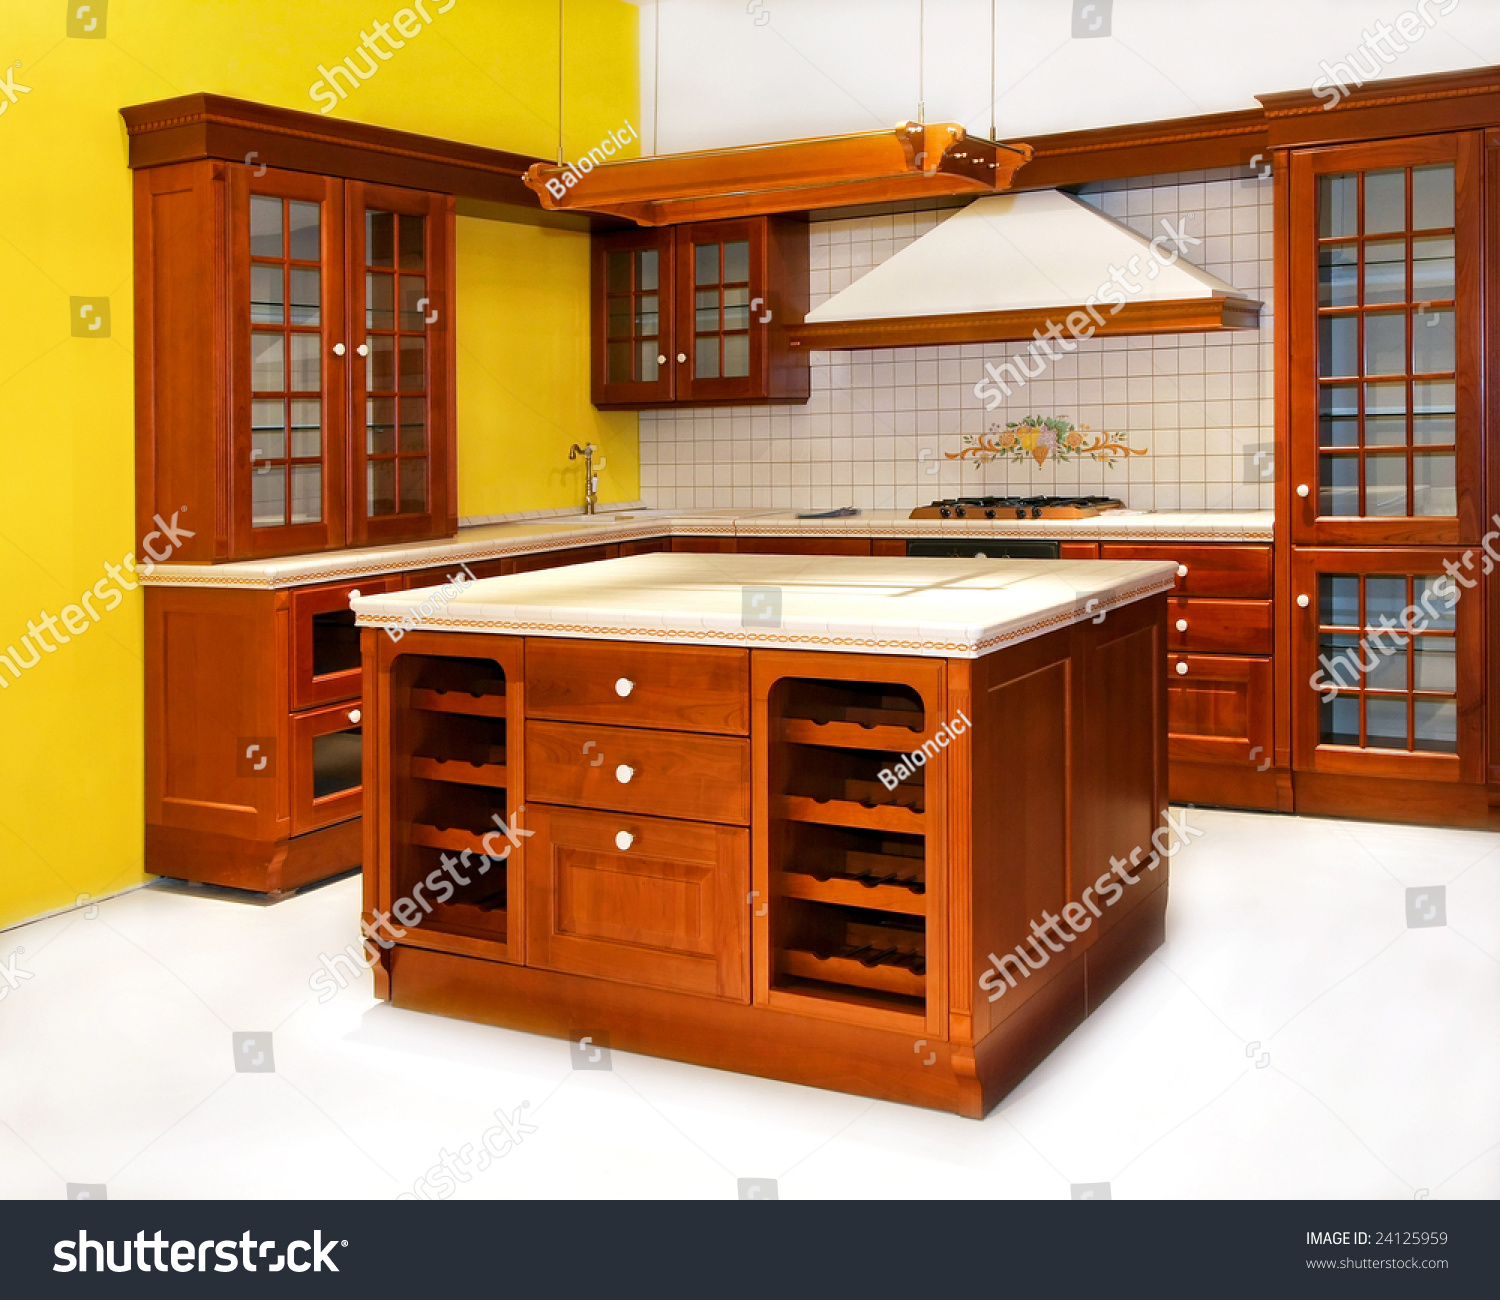 Big wooden kitchen in american classic style stock photo for American classic style